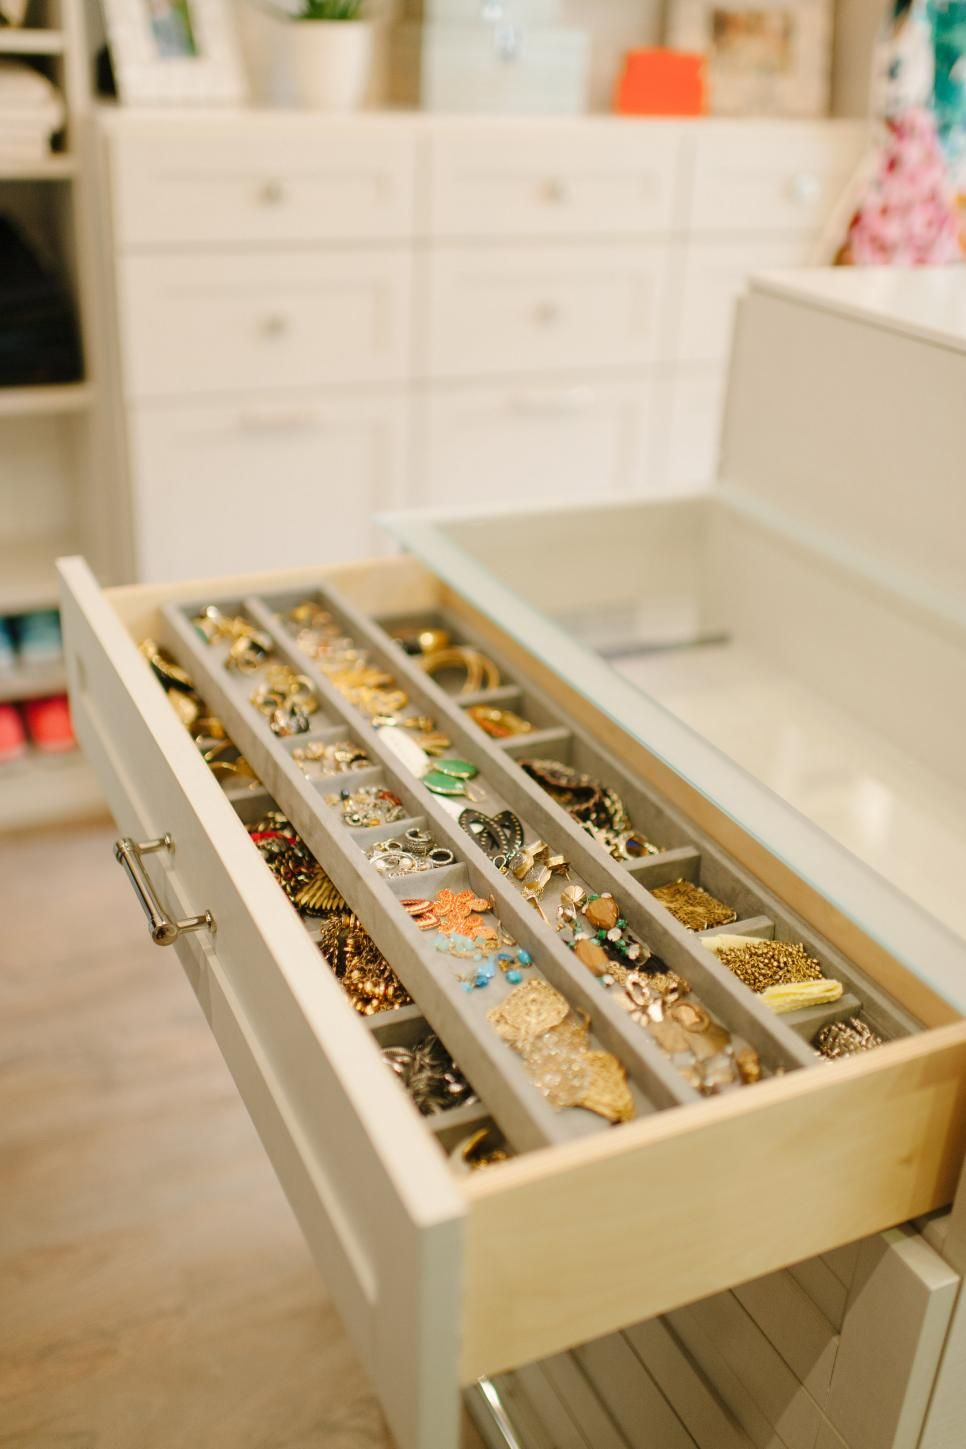 Accessory Drawers For Jewelry Ties Scarves Etc Closet Remodel Master Bedroom Closet Closet Bedroom